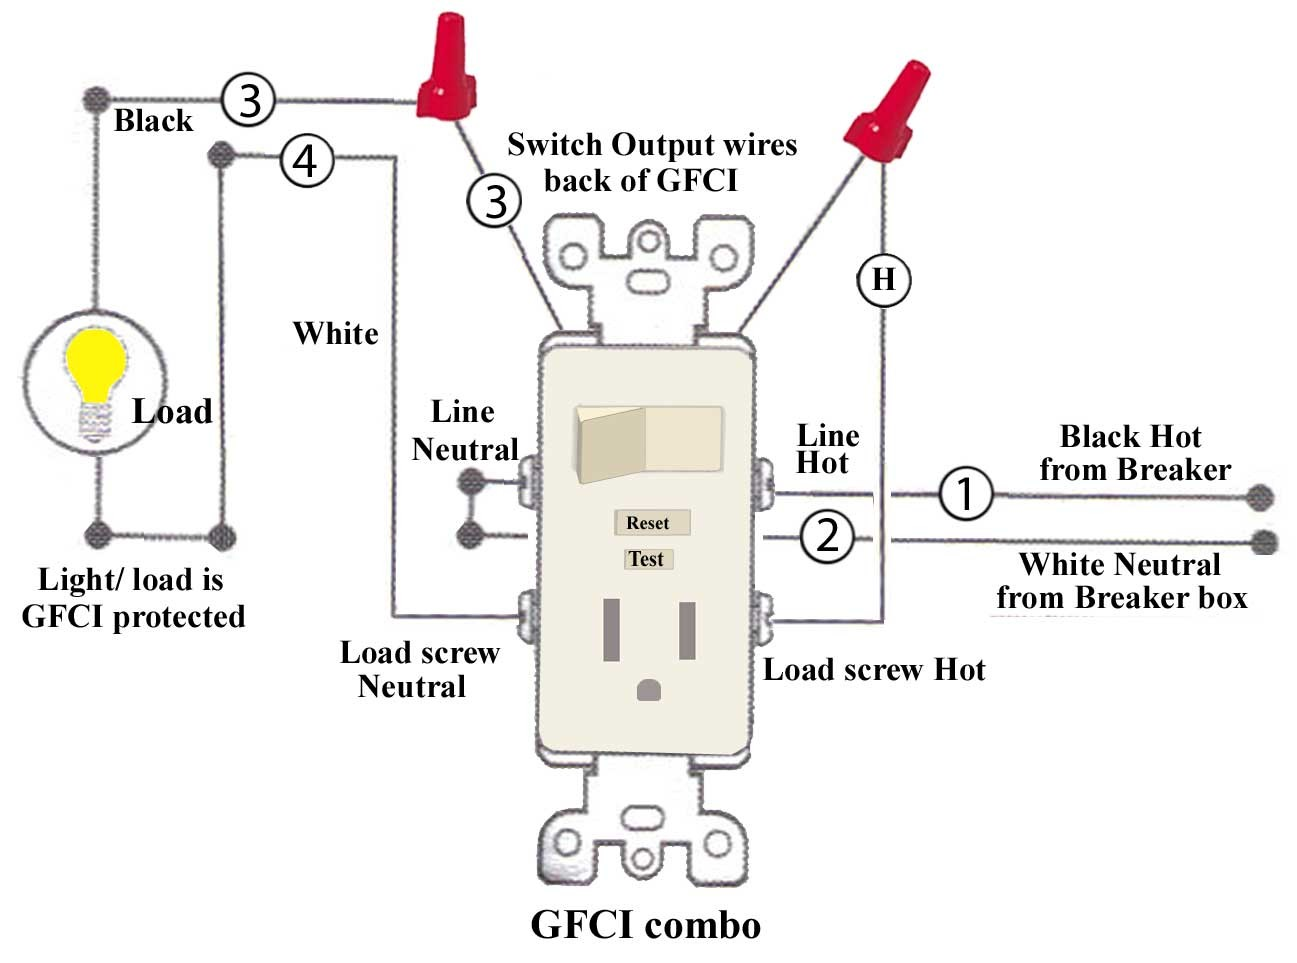 Ungrounded Gfci Wiring Diagram | Wiring Diagram on ansi wiring diagram, 3 wire 220 volt wiring diagram, circuit wiring diagram, electricity wiring diagram, box wiring diagram, cooper wiring diagram, hospital grade wiring diagram, amp wiring diagram, switch wiring diagram, relays wiring diagram, metalux wiring diagram, blank wiring diagram, motor wiring diagram, arc fault wiring diagram, transformer wiring diagram, ac wiring diagram, outlet wiring diagram, electrical wiring diagram, afci wiring diagram, power wiring diagram,